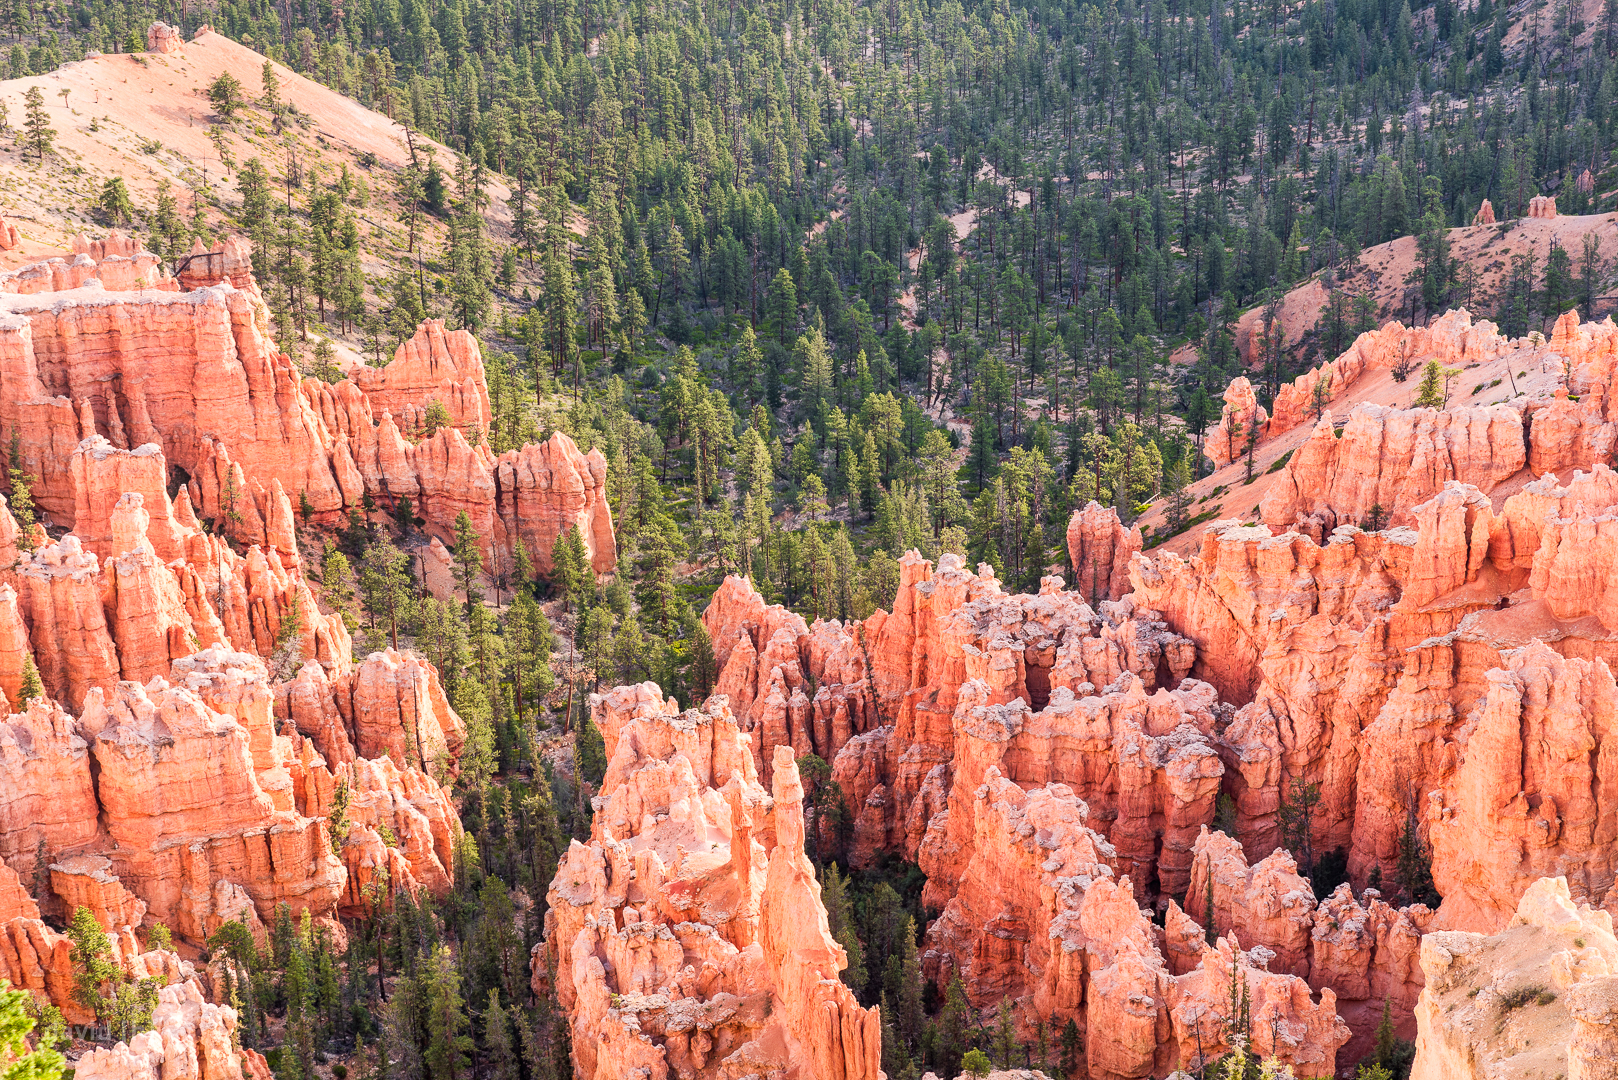 Ridges of hoodoos lead into a forested valley in Bryce Canyon.